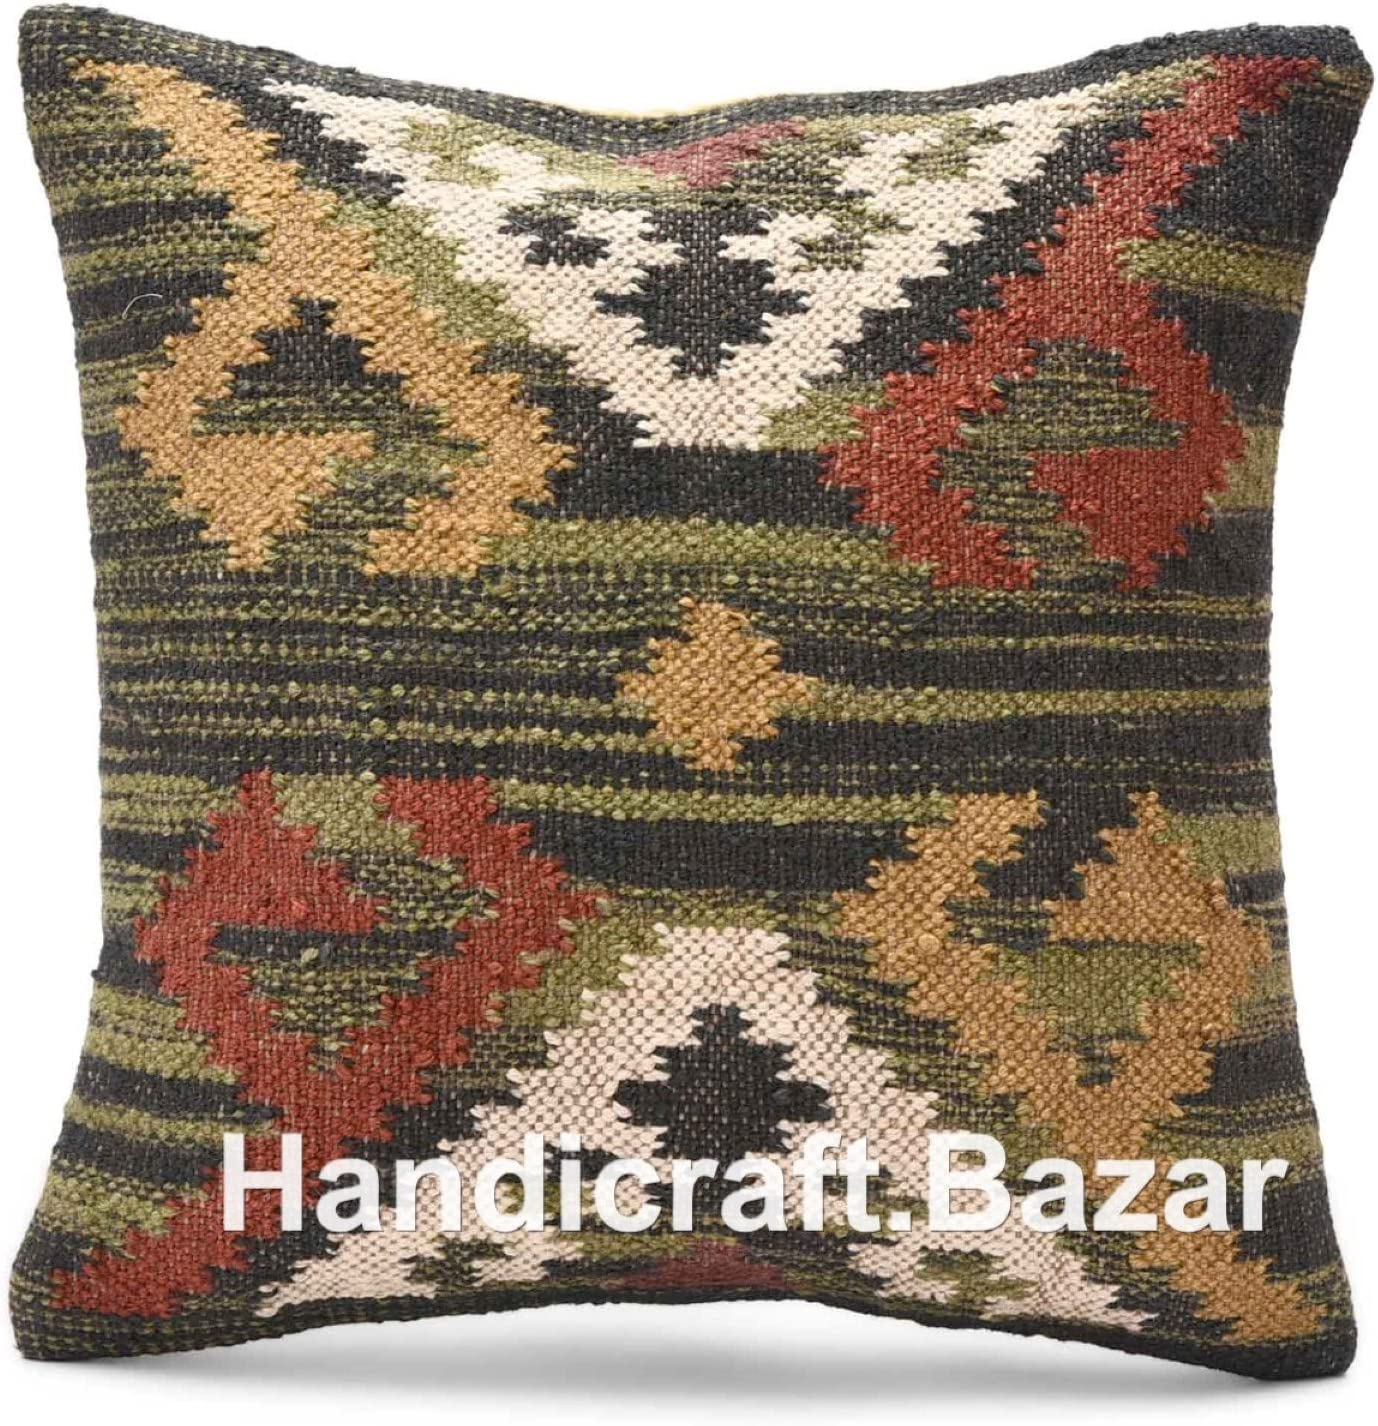 Handicraft Bazarr Moroccan Pillow Case Maternity Body Pillow Cover Handmade Wool Jute Floor Throw Kilim Cushion Cover Turkish Home Decor Pillow Cases, Living Room Ethnic Cushion Cover